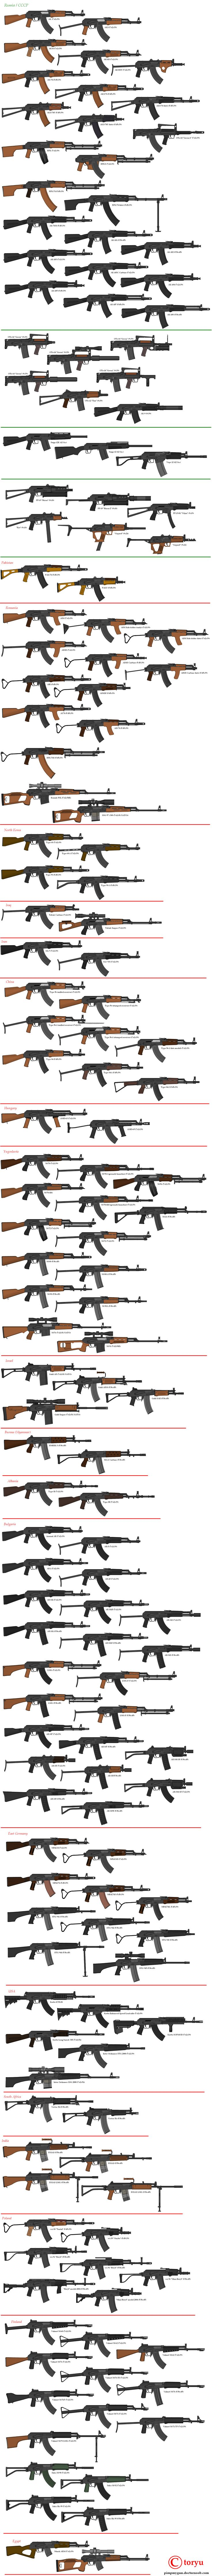 Kalashnikov AK 47 and Variants from Rossiya (Russia) and the rest of the world.